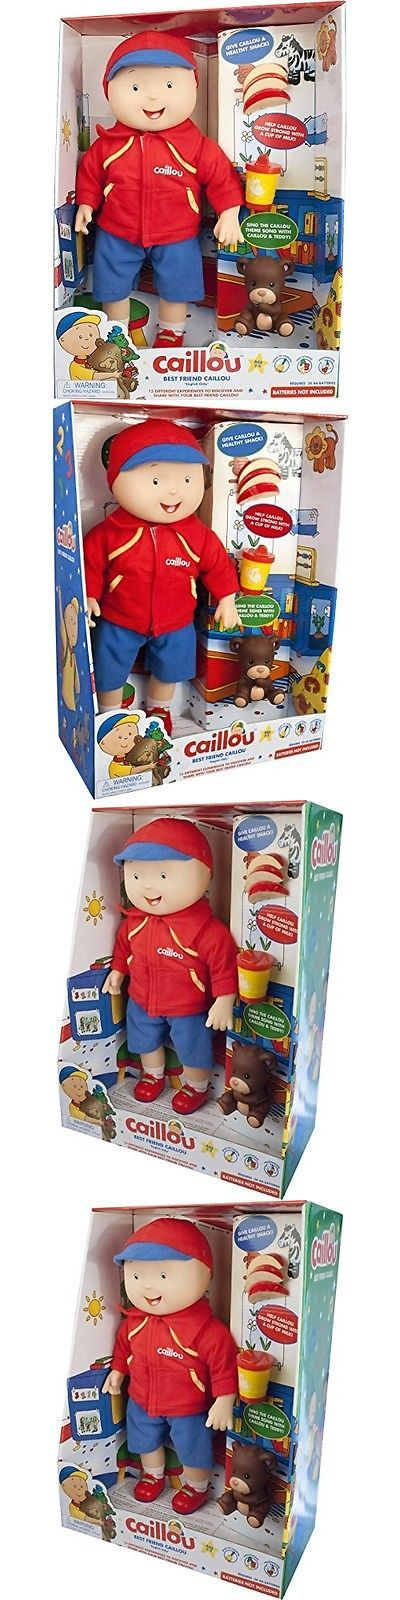 Caillou 20903: Caillou Best Friend, Electronic Doll -> BUY IT NOW ONLY: $85.79 on eBay!